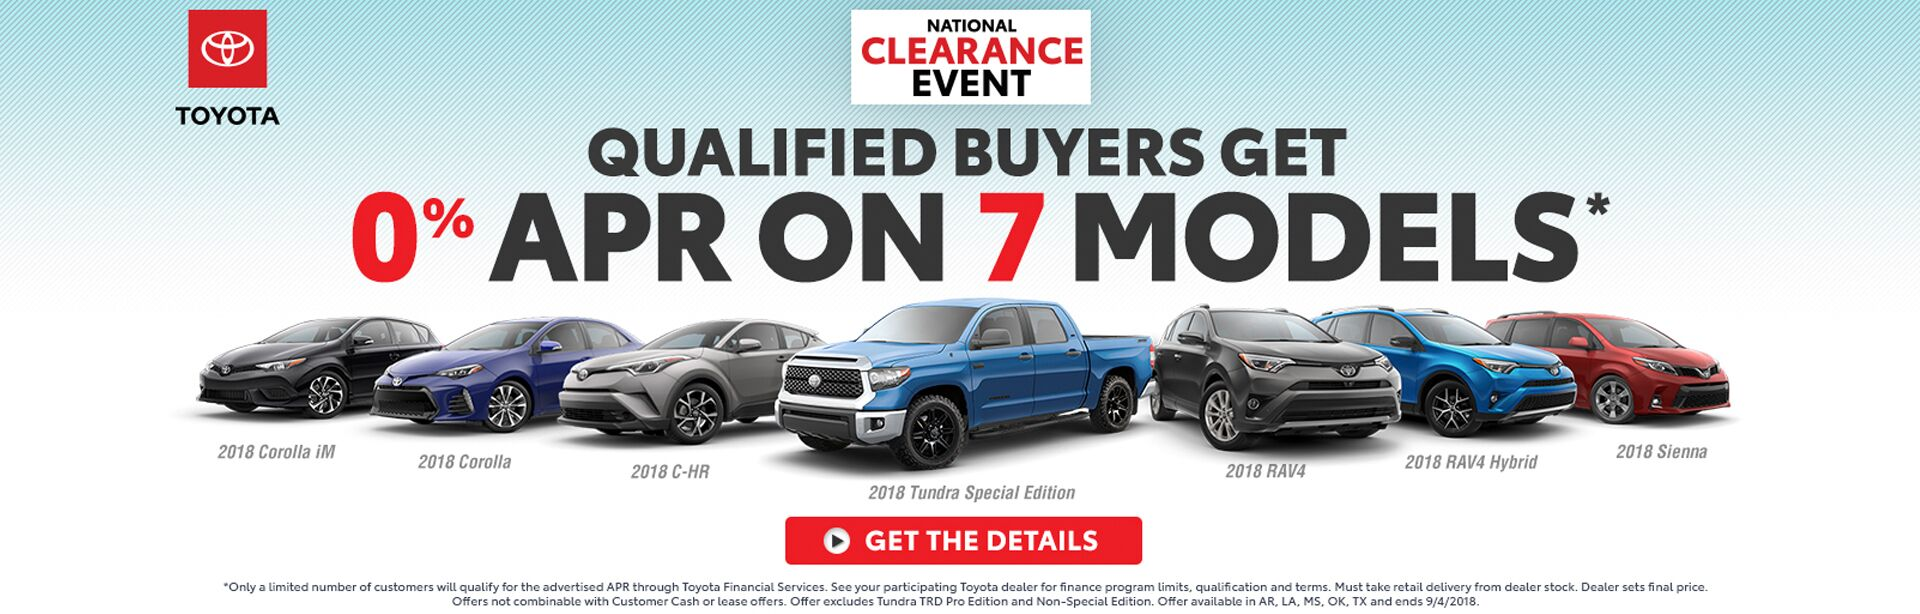 0% APR for 7 Models